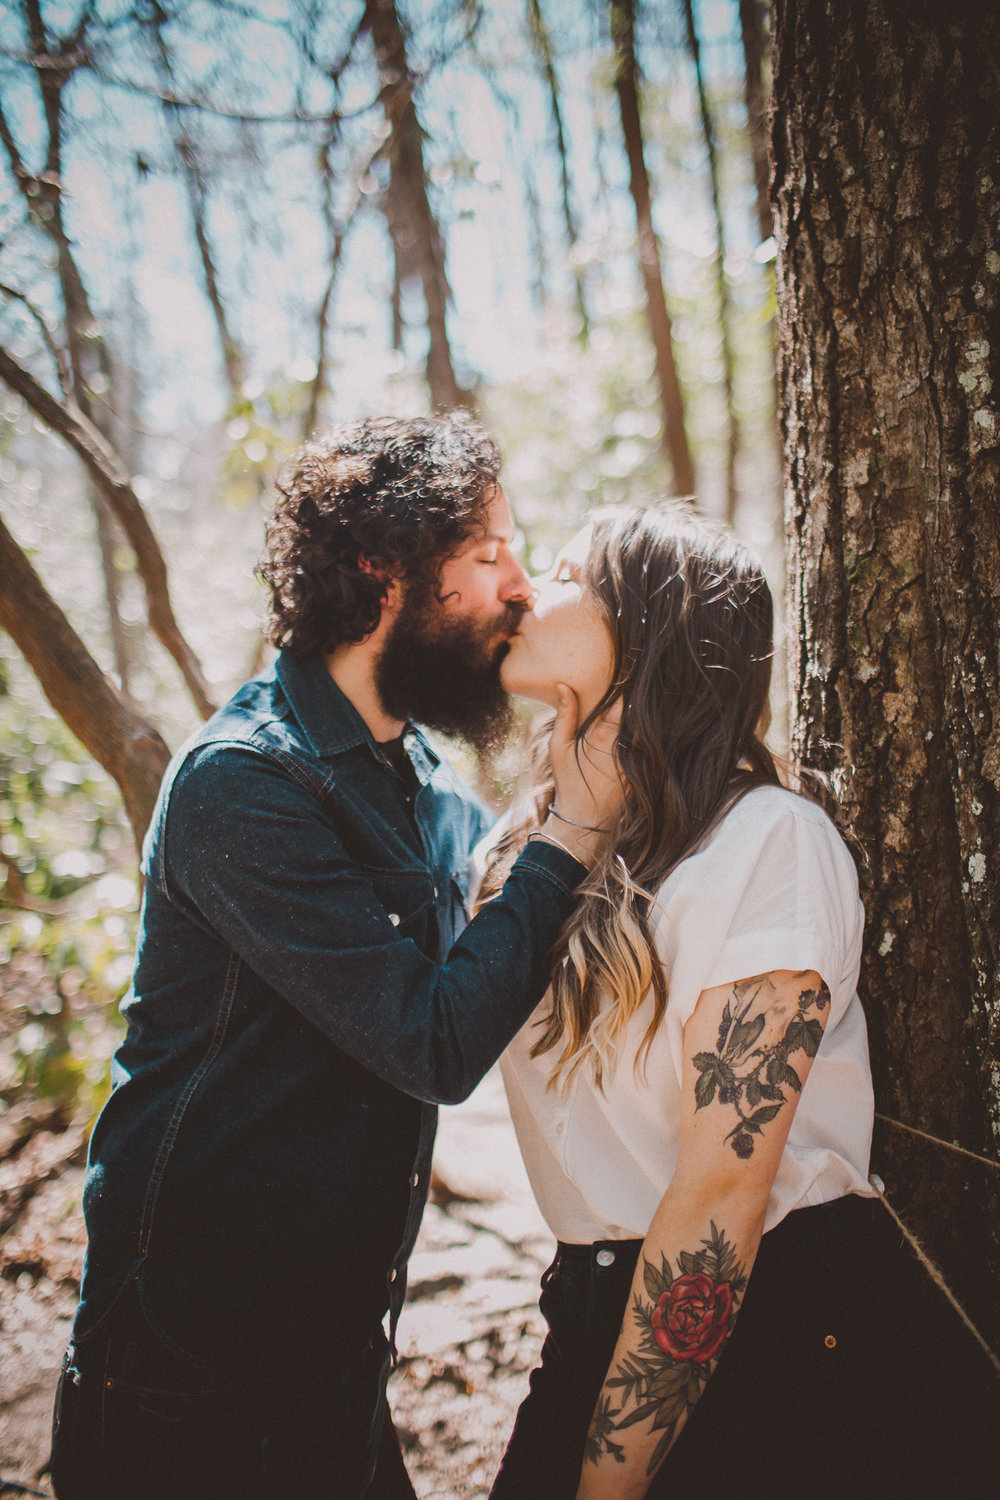 hipster-mountain-engagement-kelley-raye-los-angeles-wedding-photographer-11.jpg